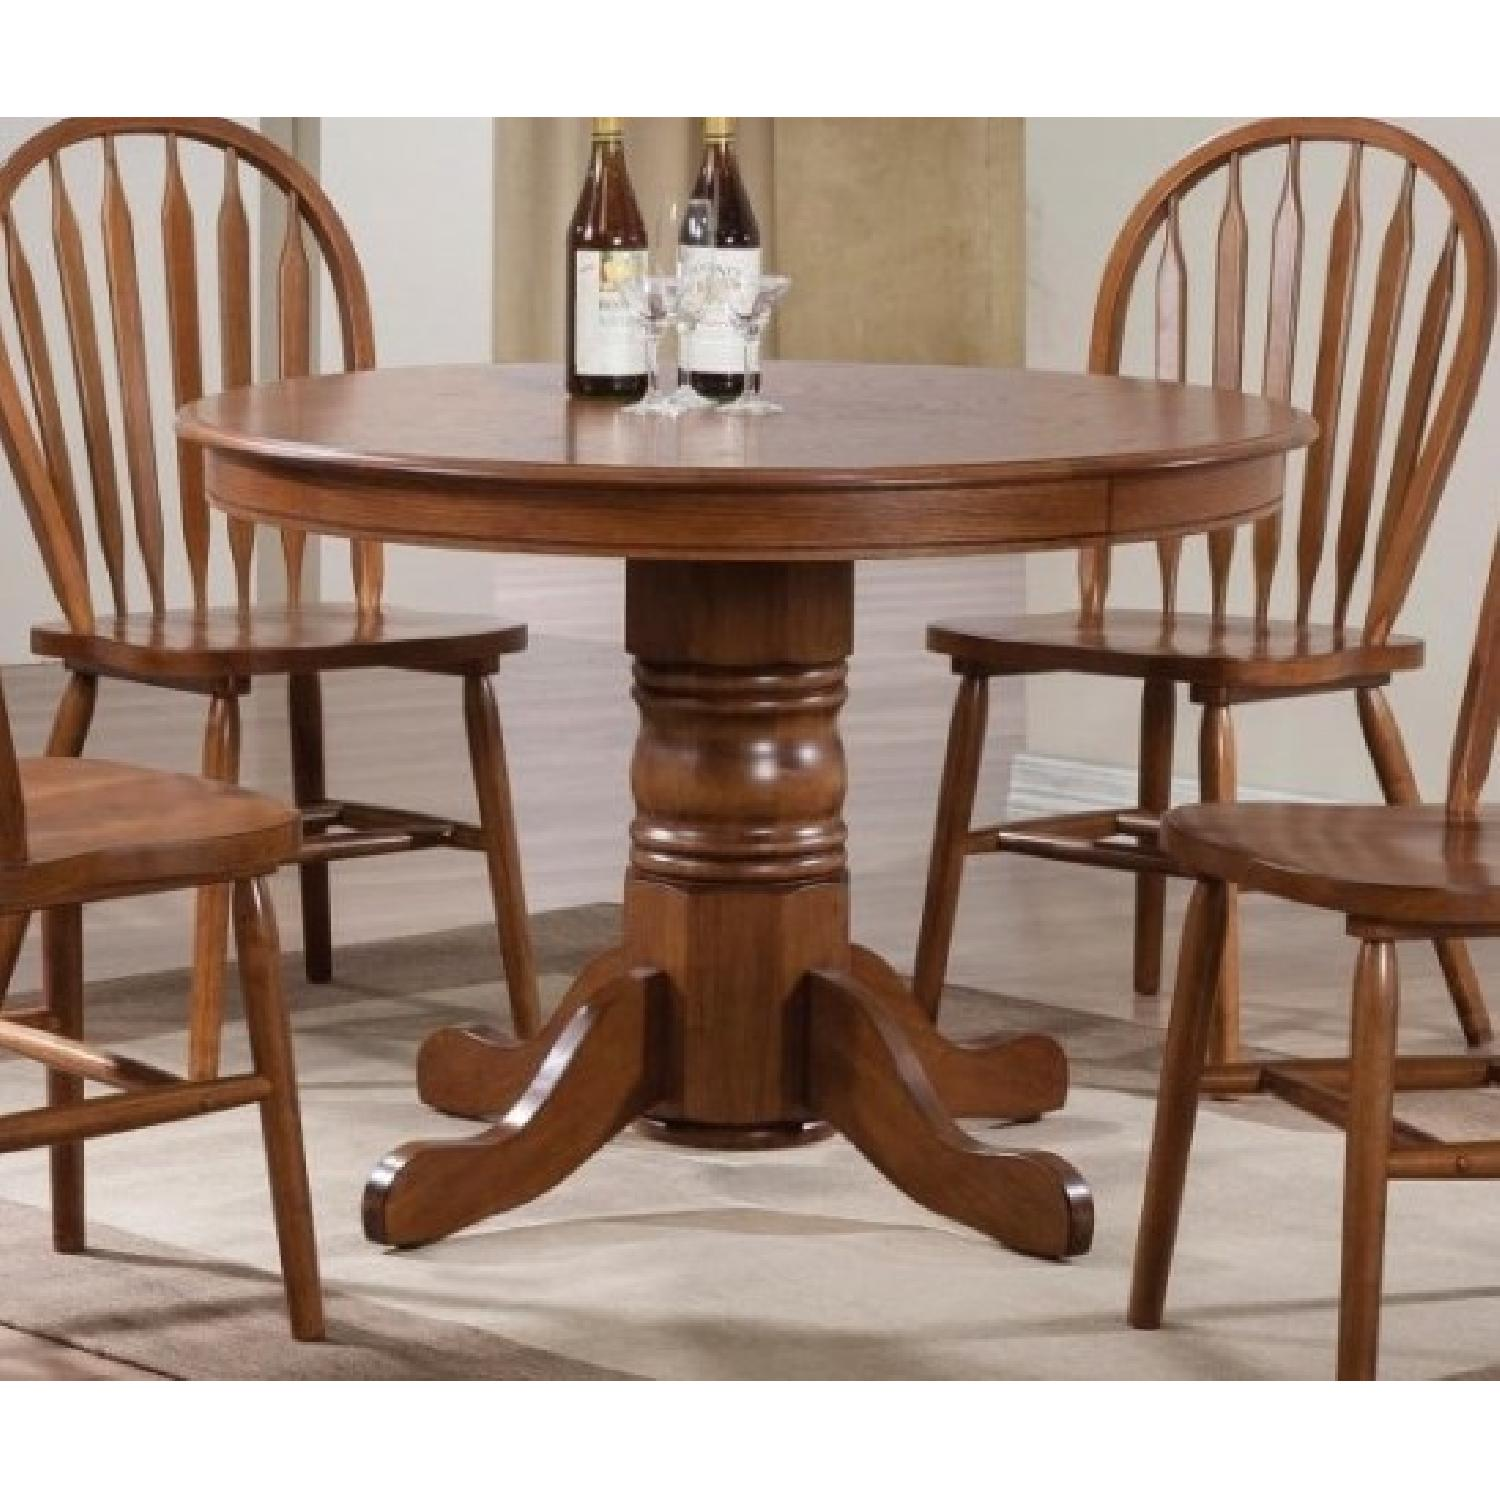 Country Style Round Pedestal Dining Table in Warm Oak Finish - image-2